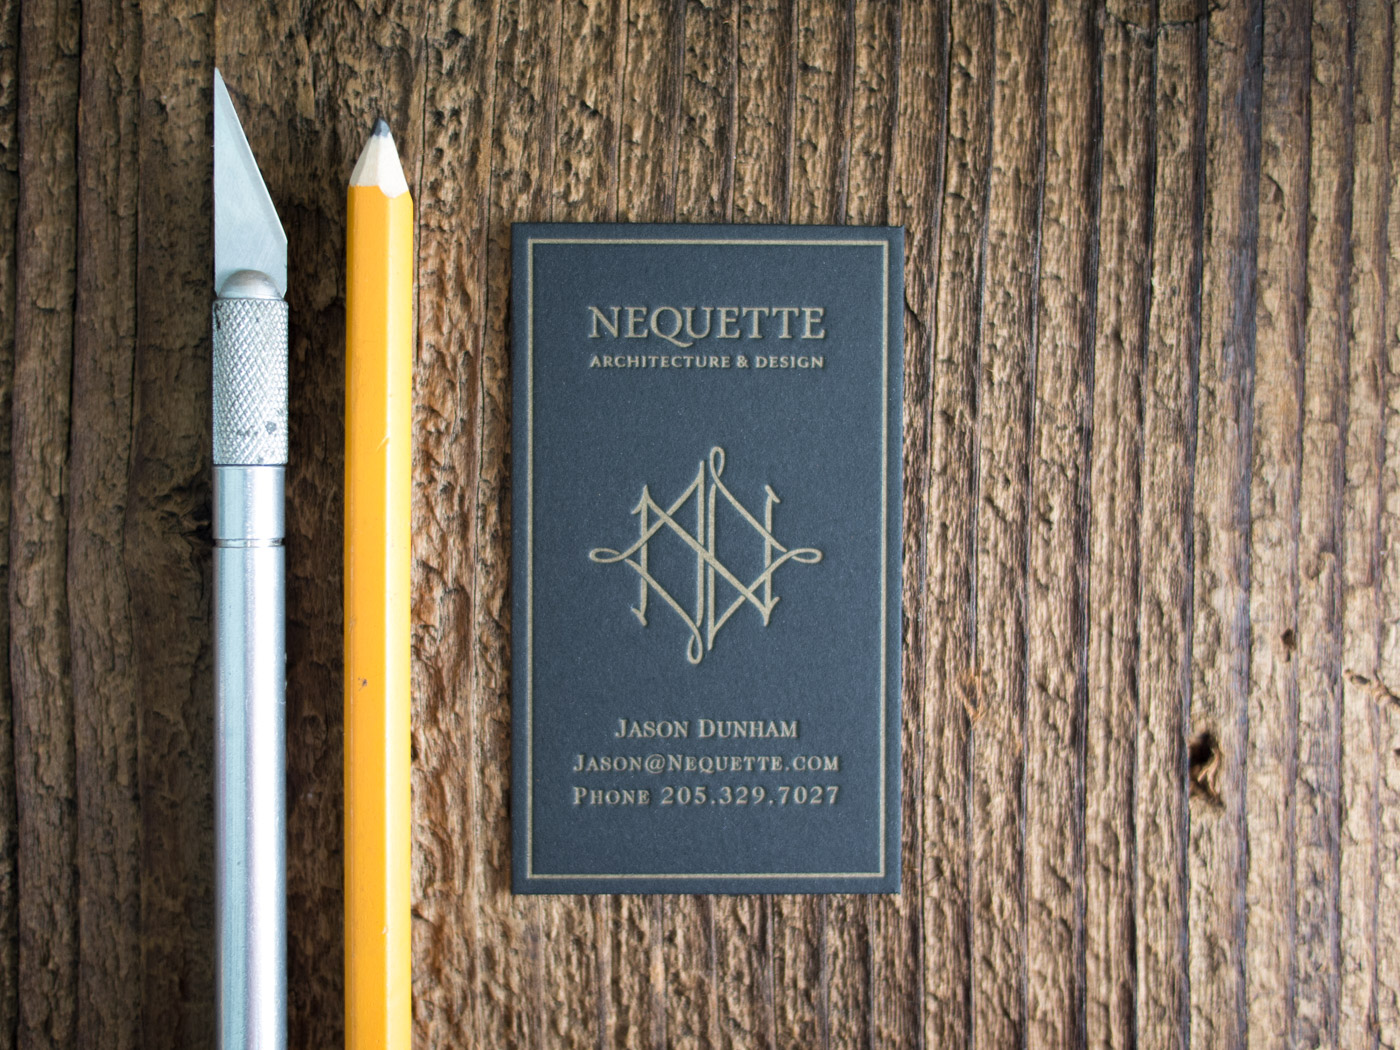 Nequette Architecture | Printed by Parklife Press